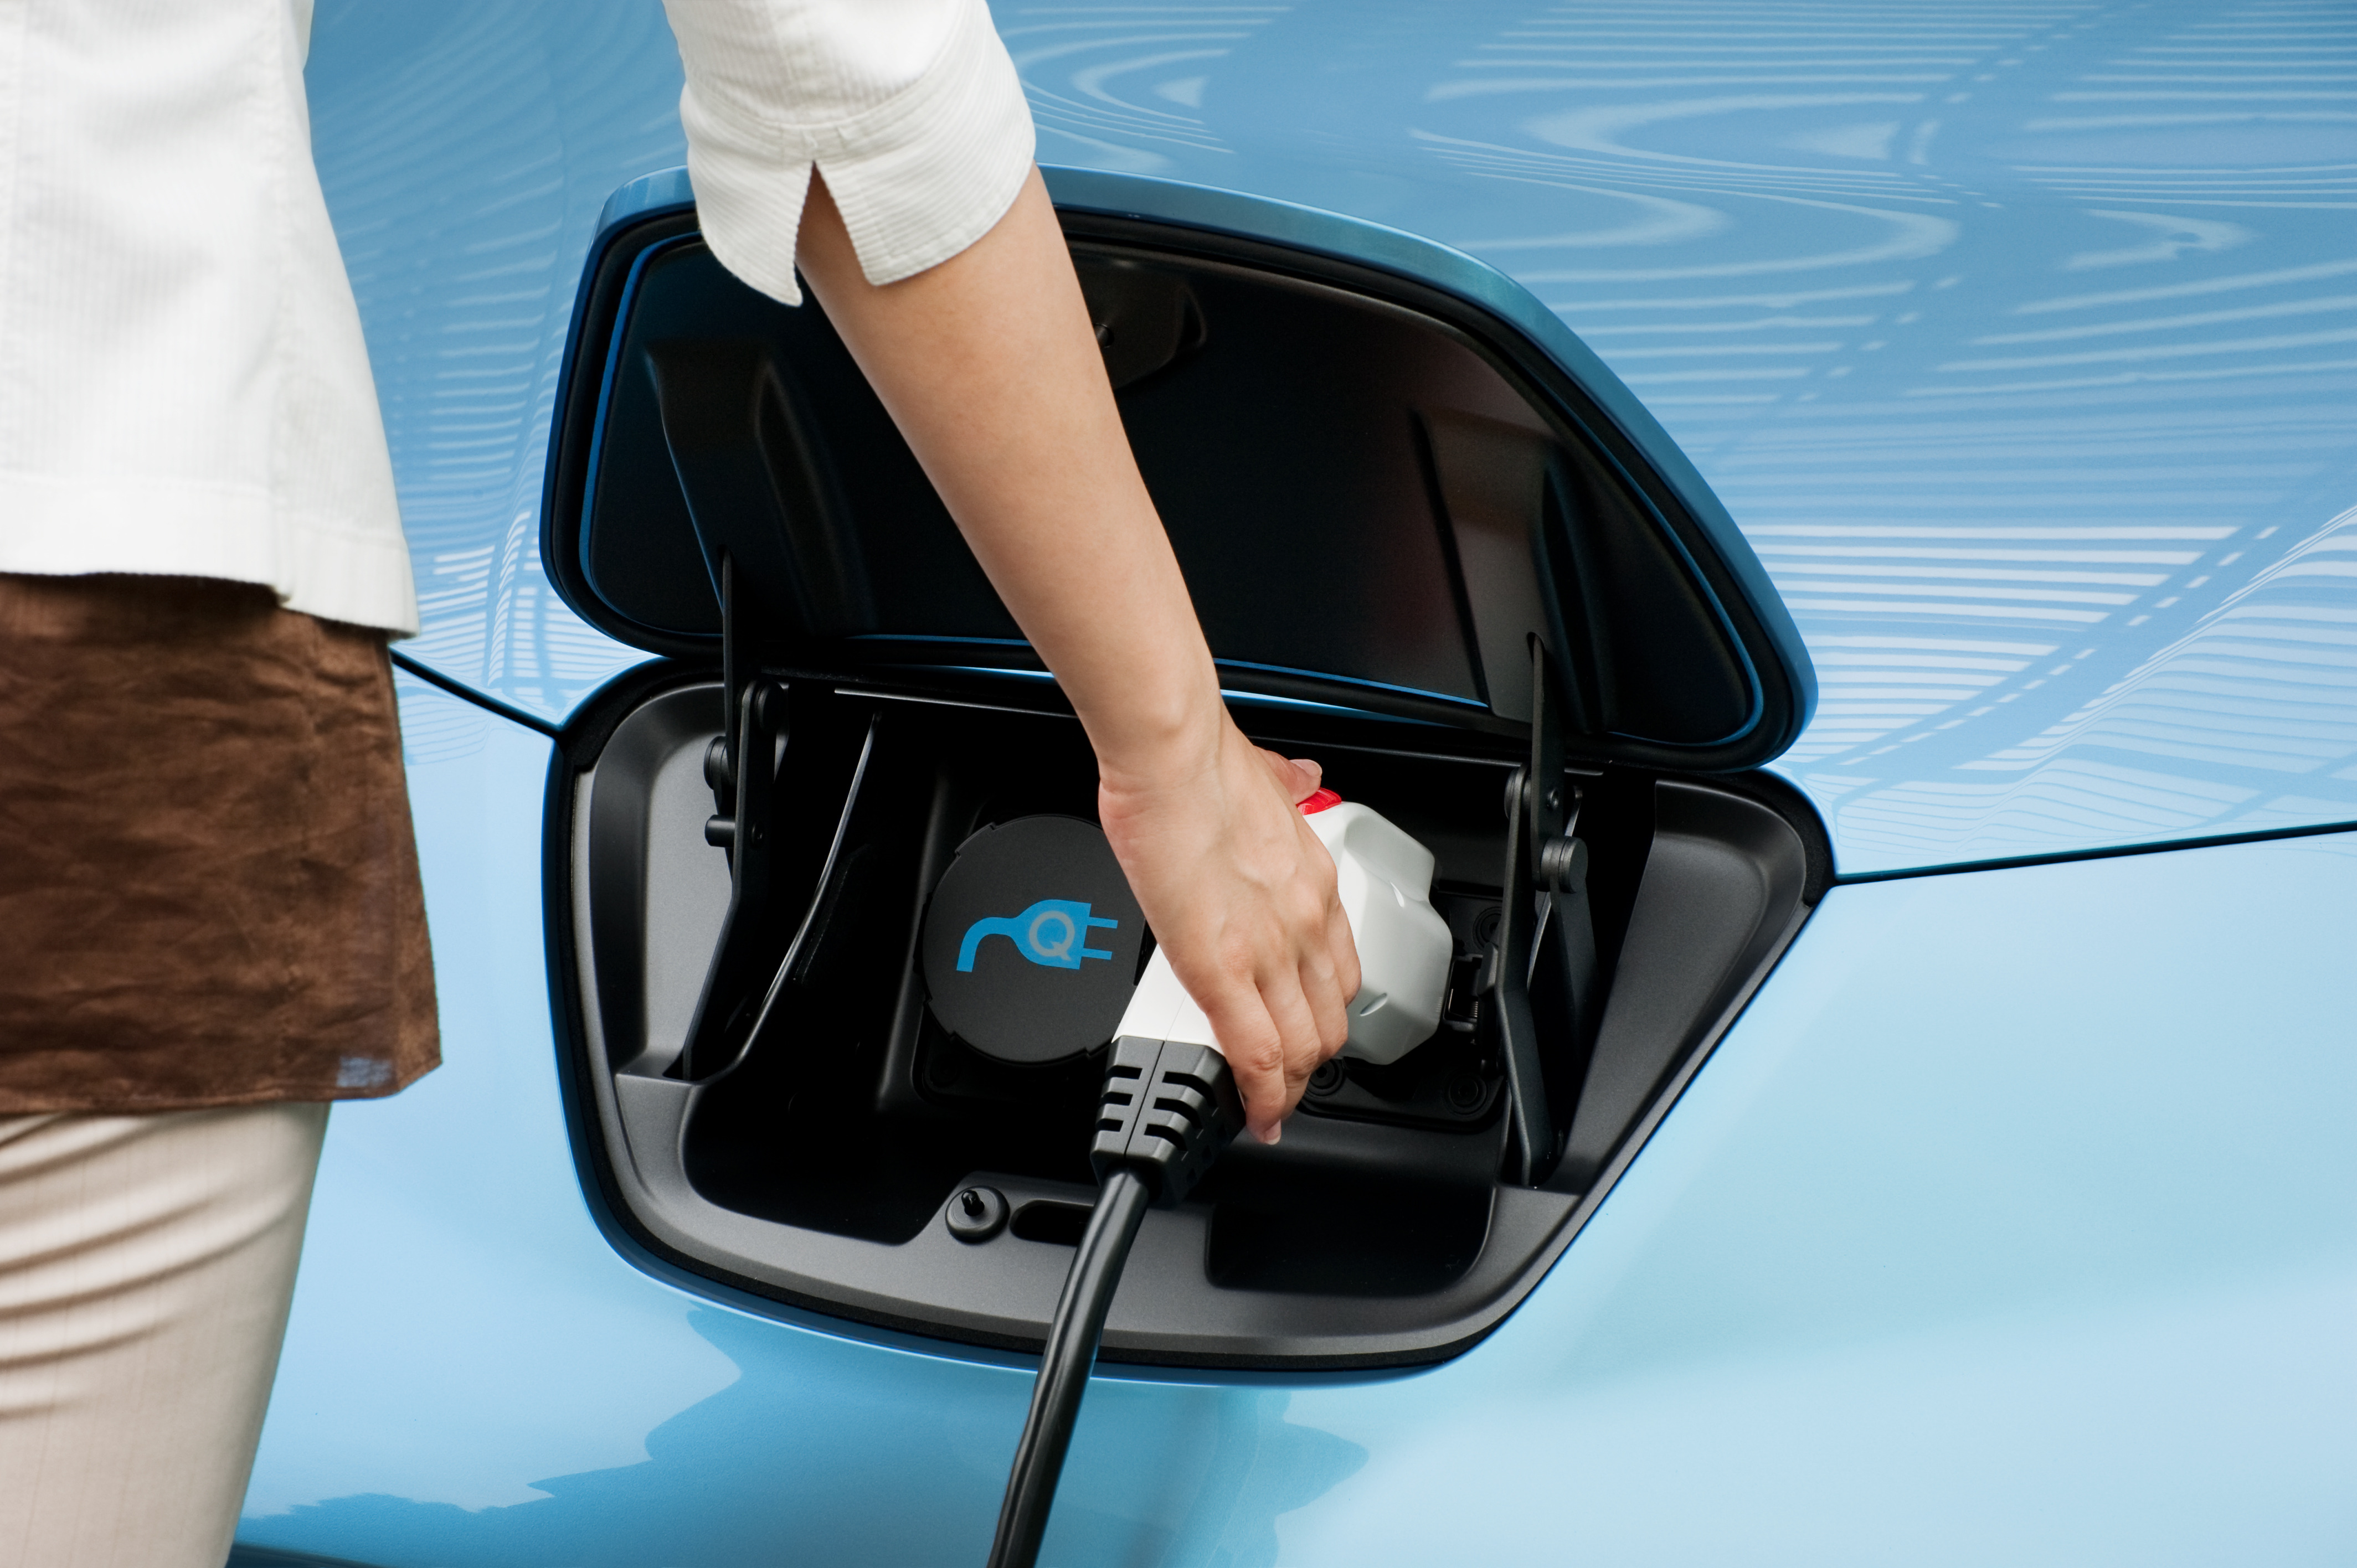 Fill 'er up as often as you like. DC fast-charging shouldn't harm your EV's battery.